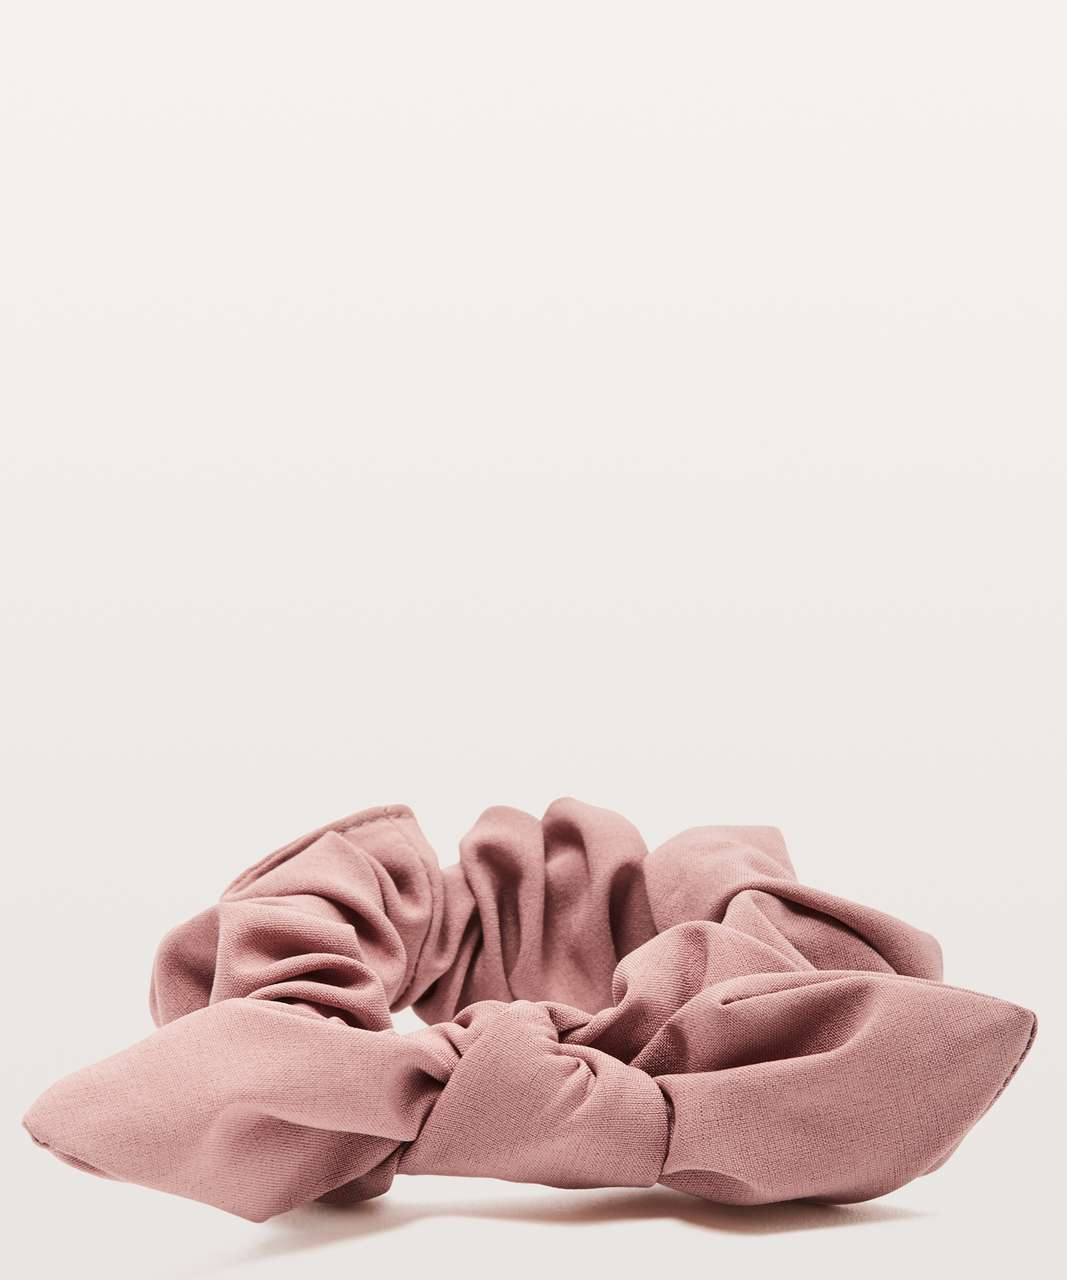 Lululemon Uplifting Scrunchie *Bow - Copper Coil